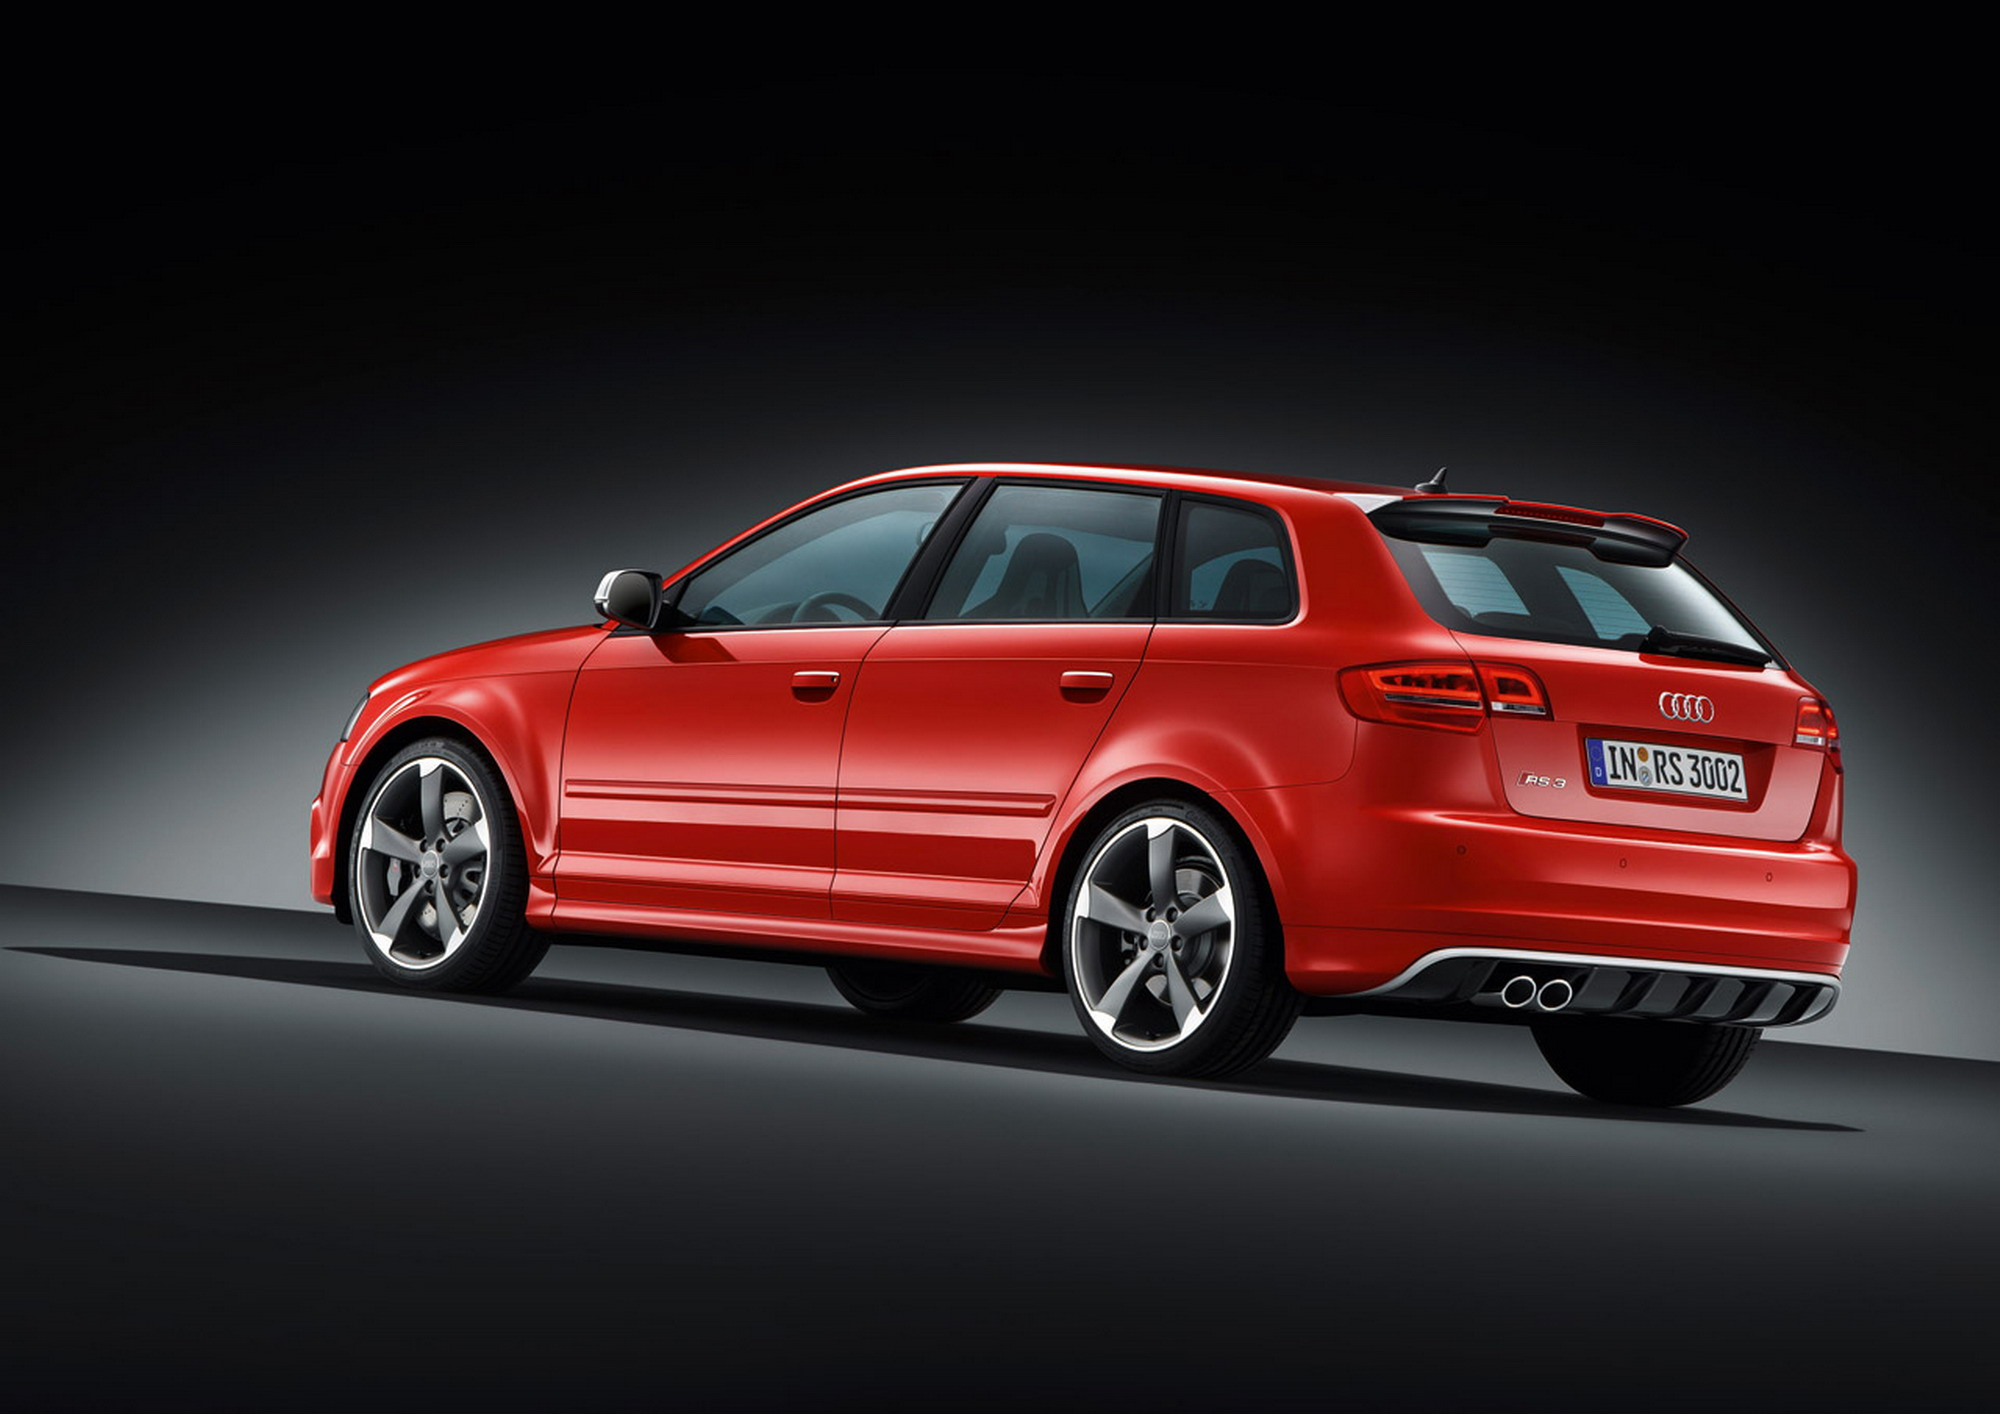 2011 Audi Rs 3 Sportback Photos Features Price